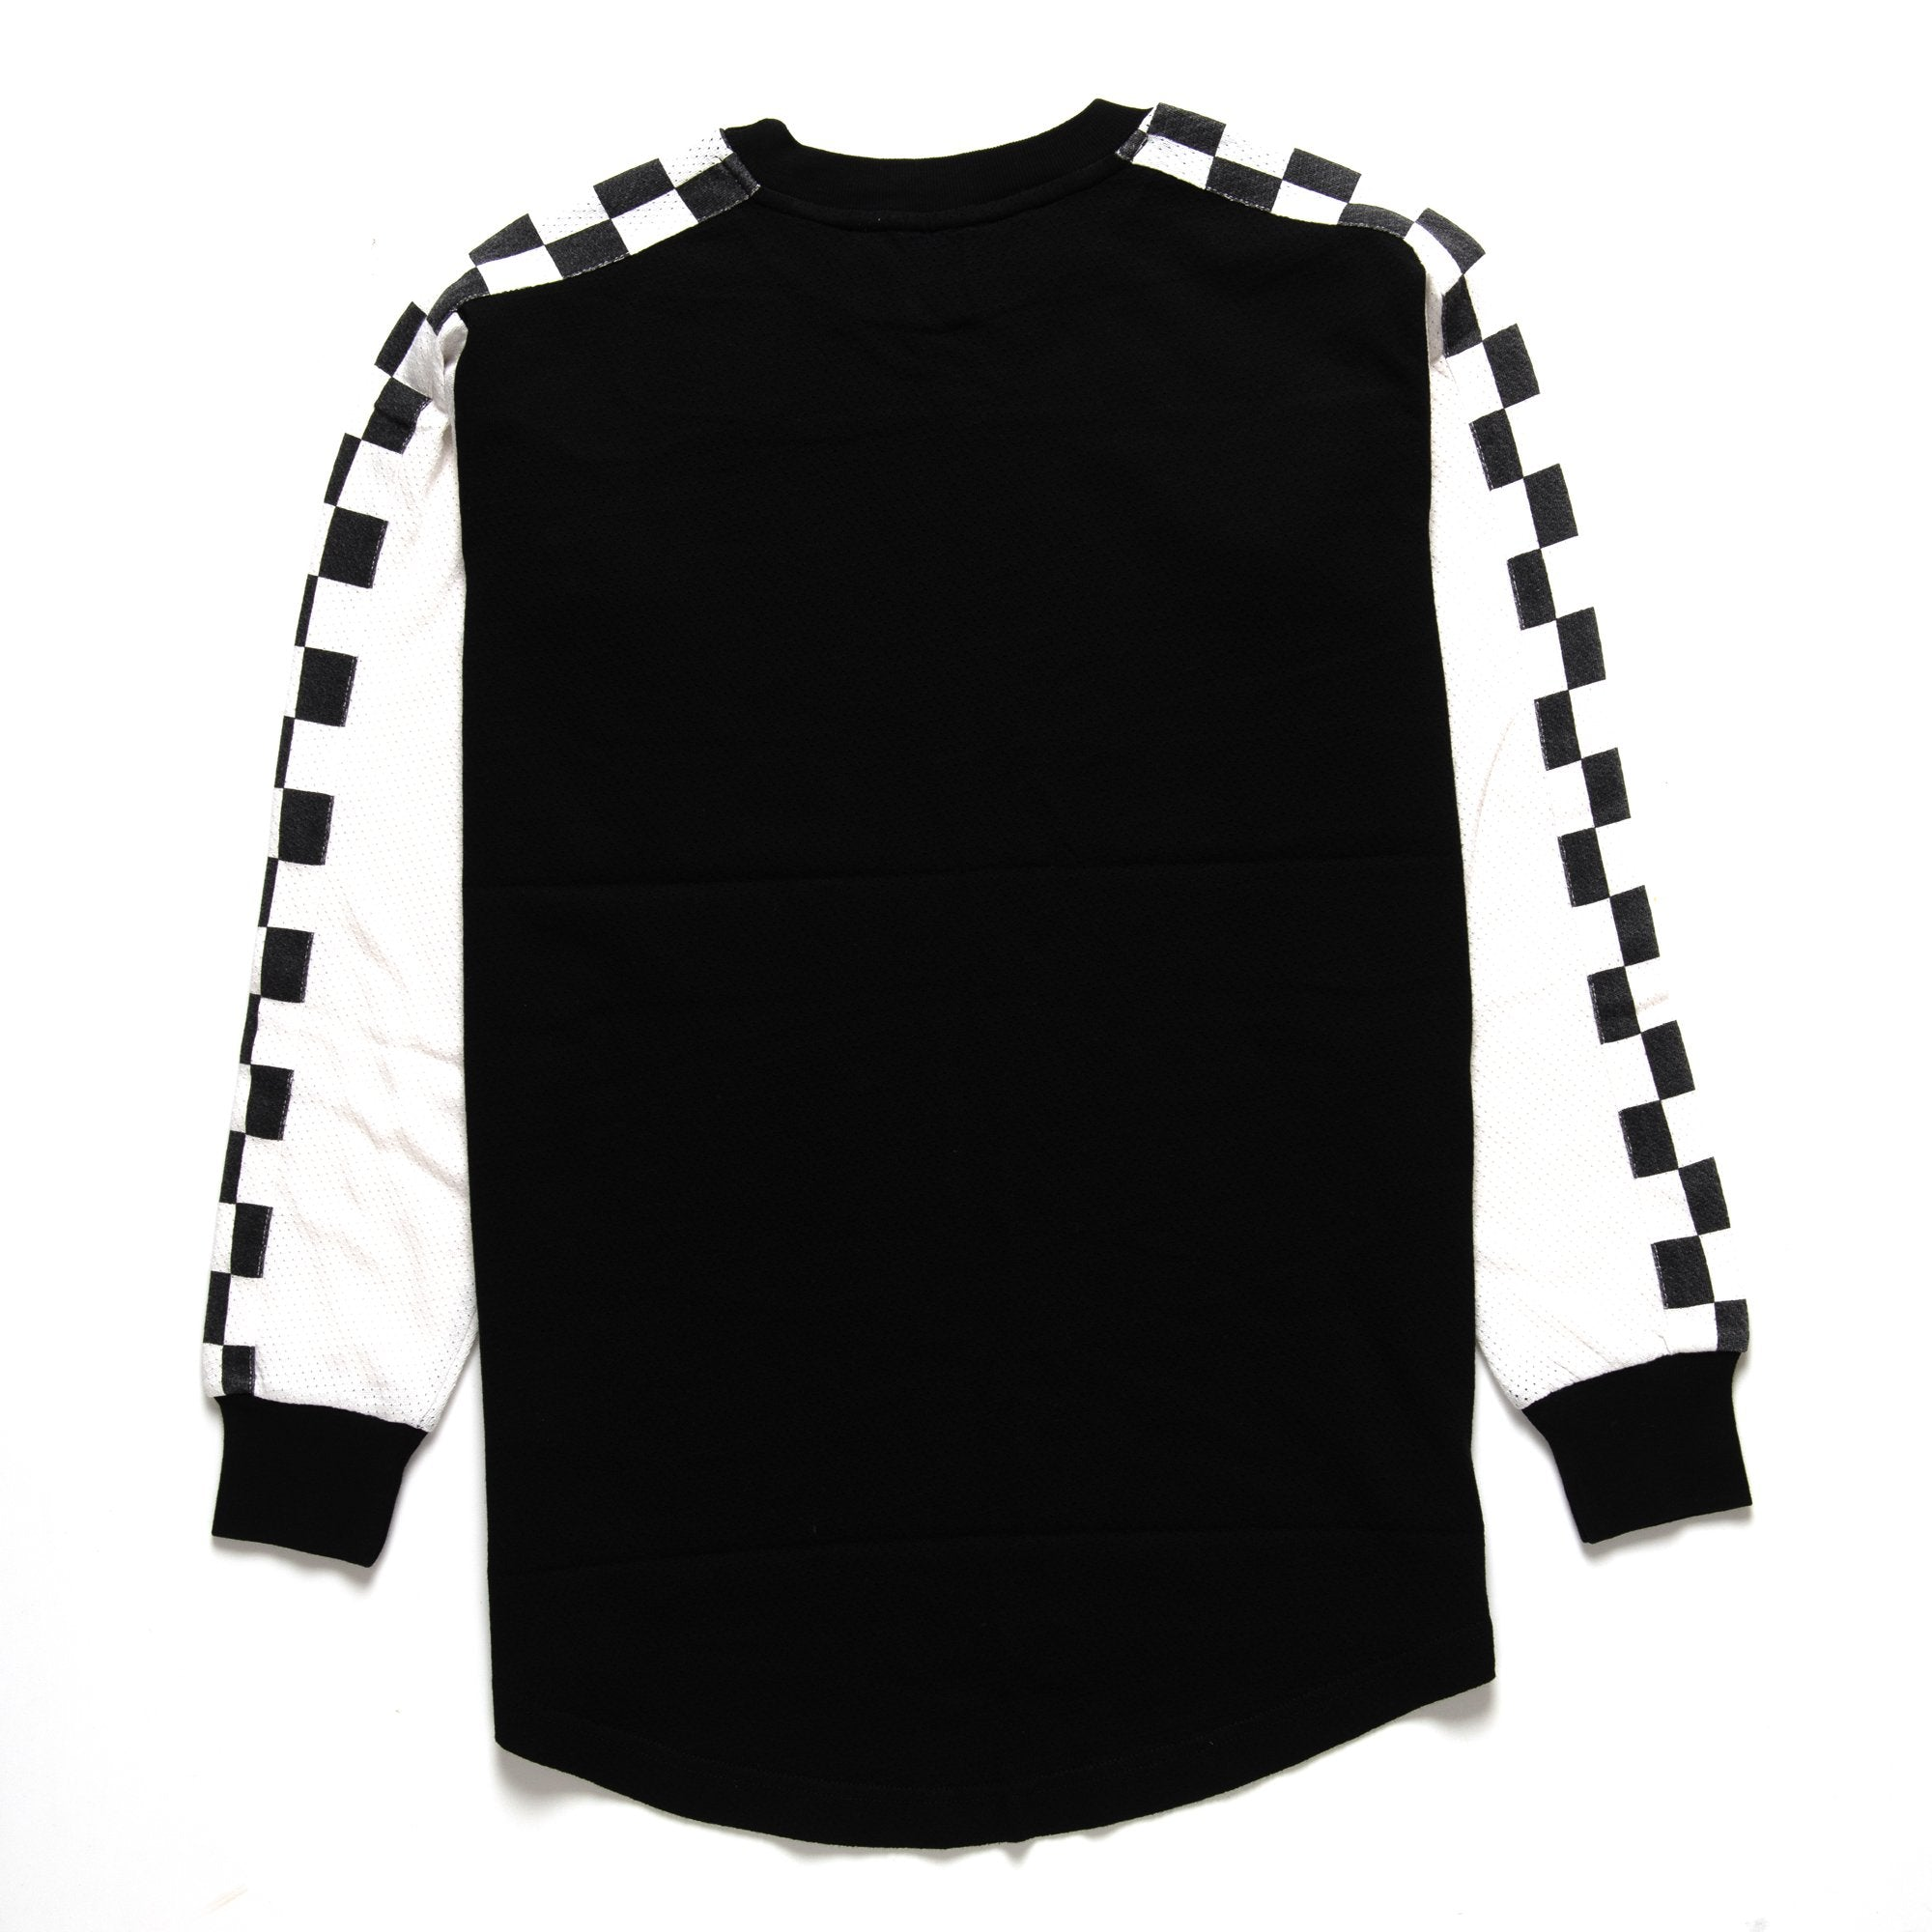 Wildfires Moto Jersey - Black / White